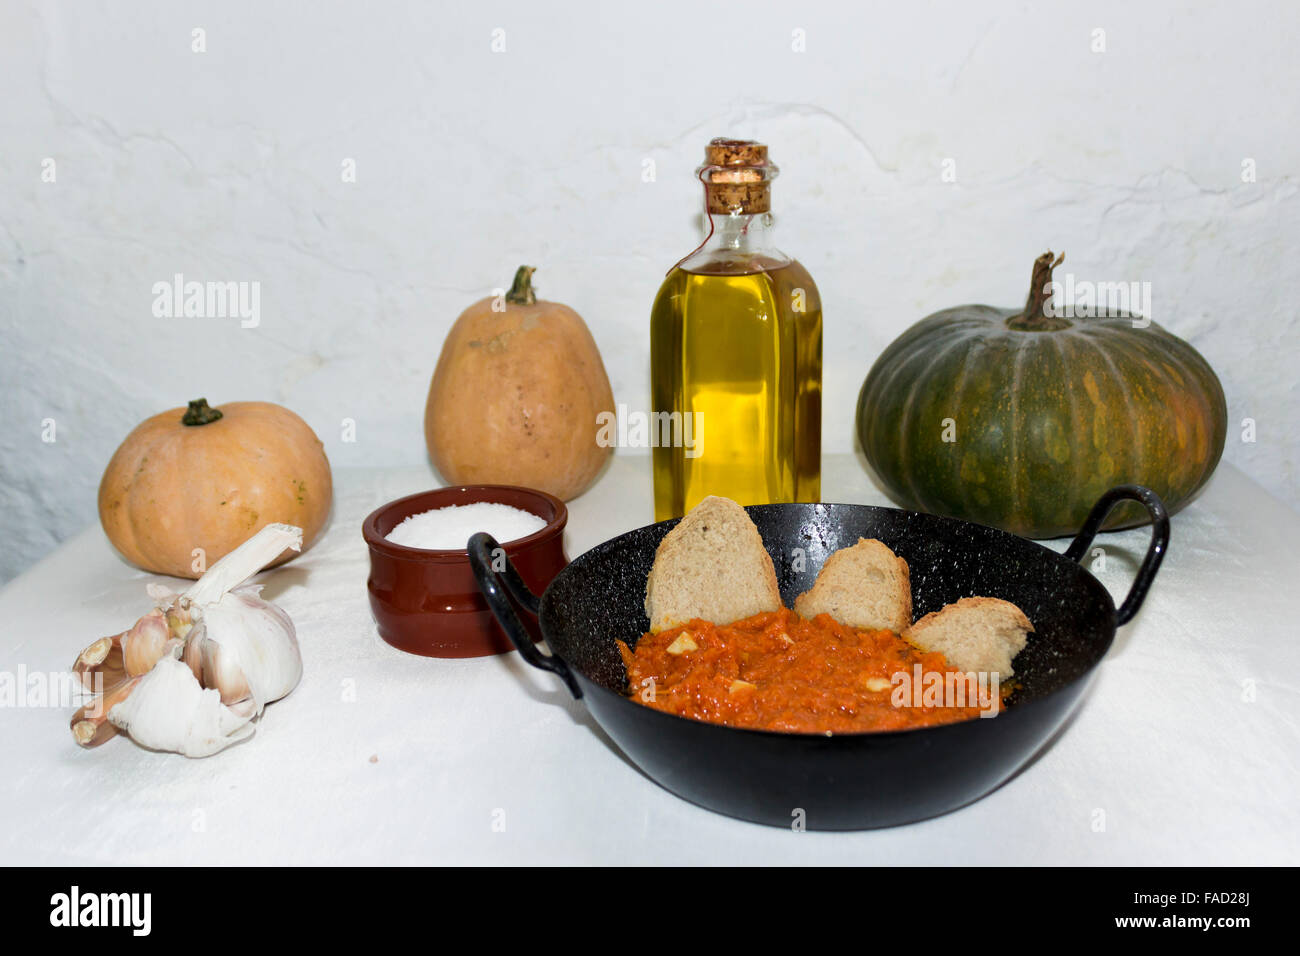 Typical Spanish tapa of pureed pumpkin and bread. - Stock Image